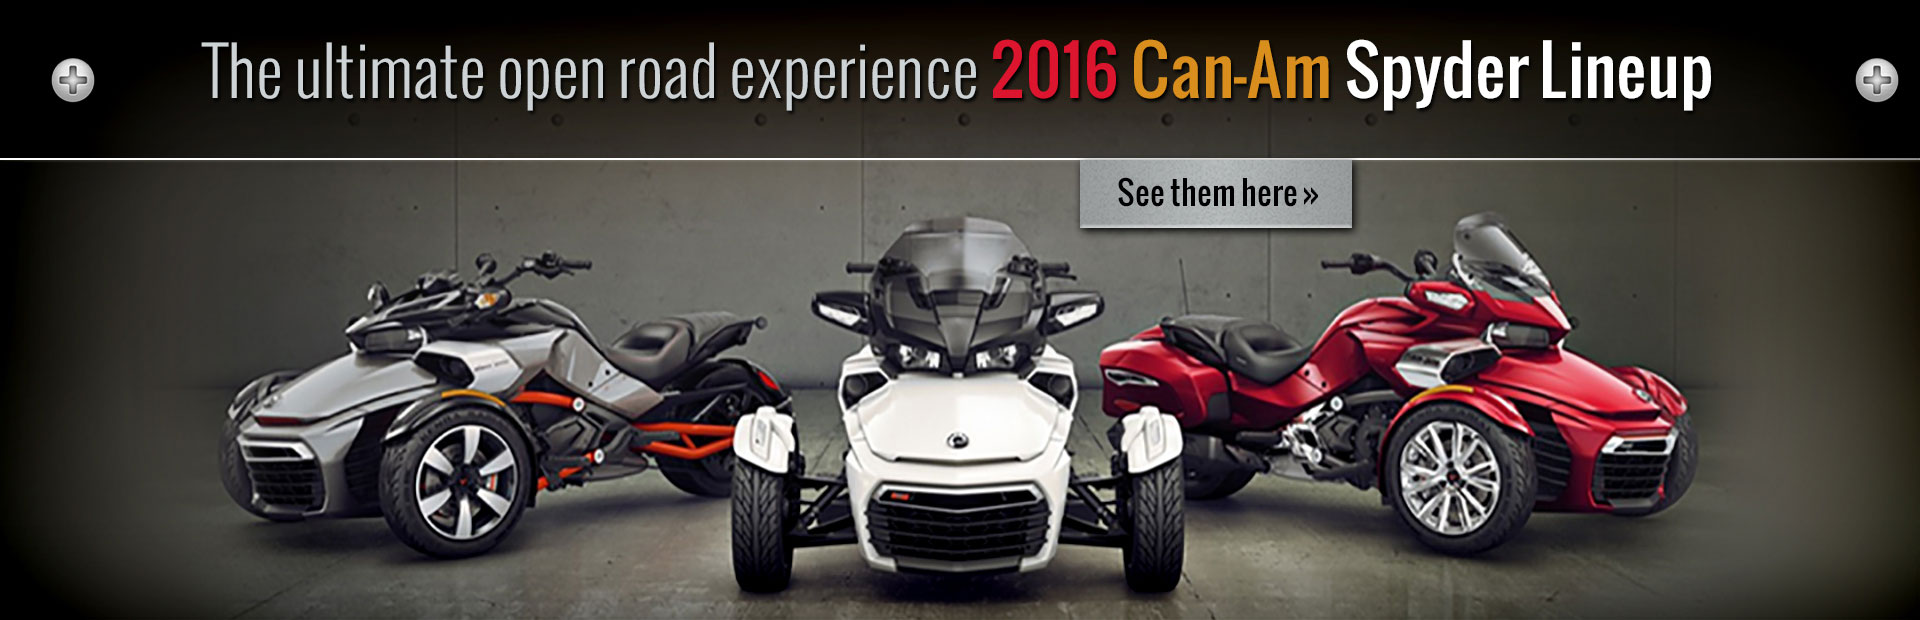 Click here to view the 2016 Can-Am Spyder lineup!